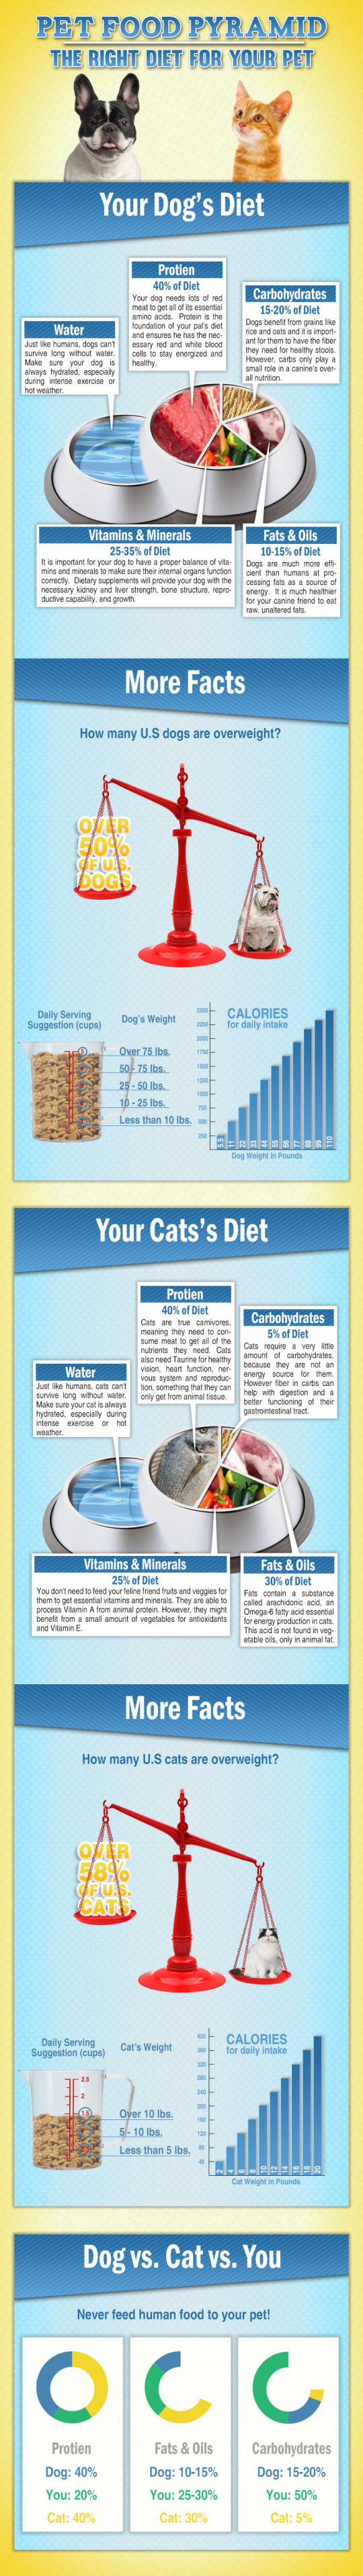 Pet Food Pyramid - The Right Diet for Your Pets